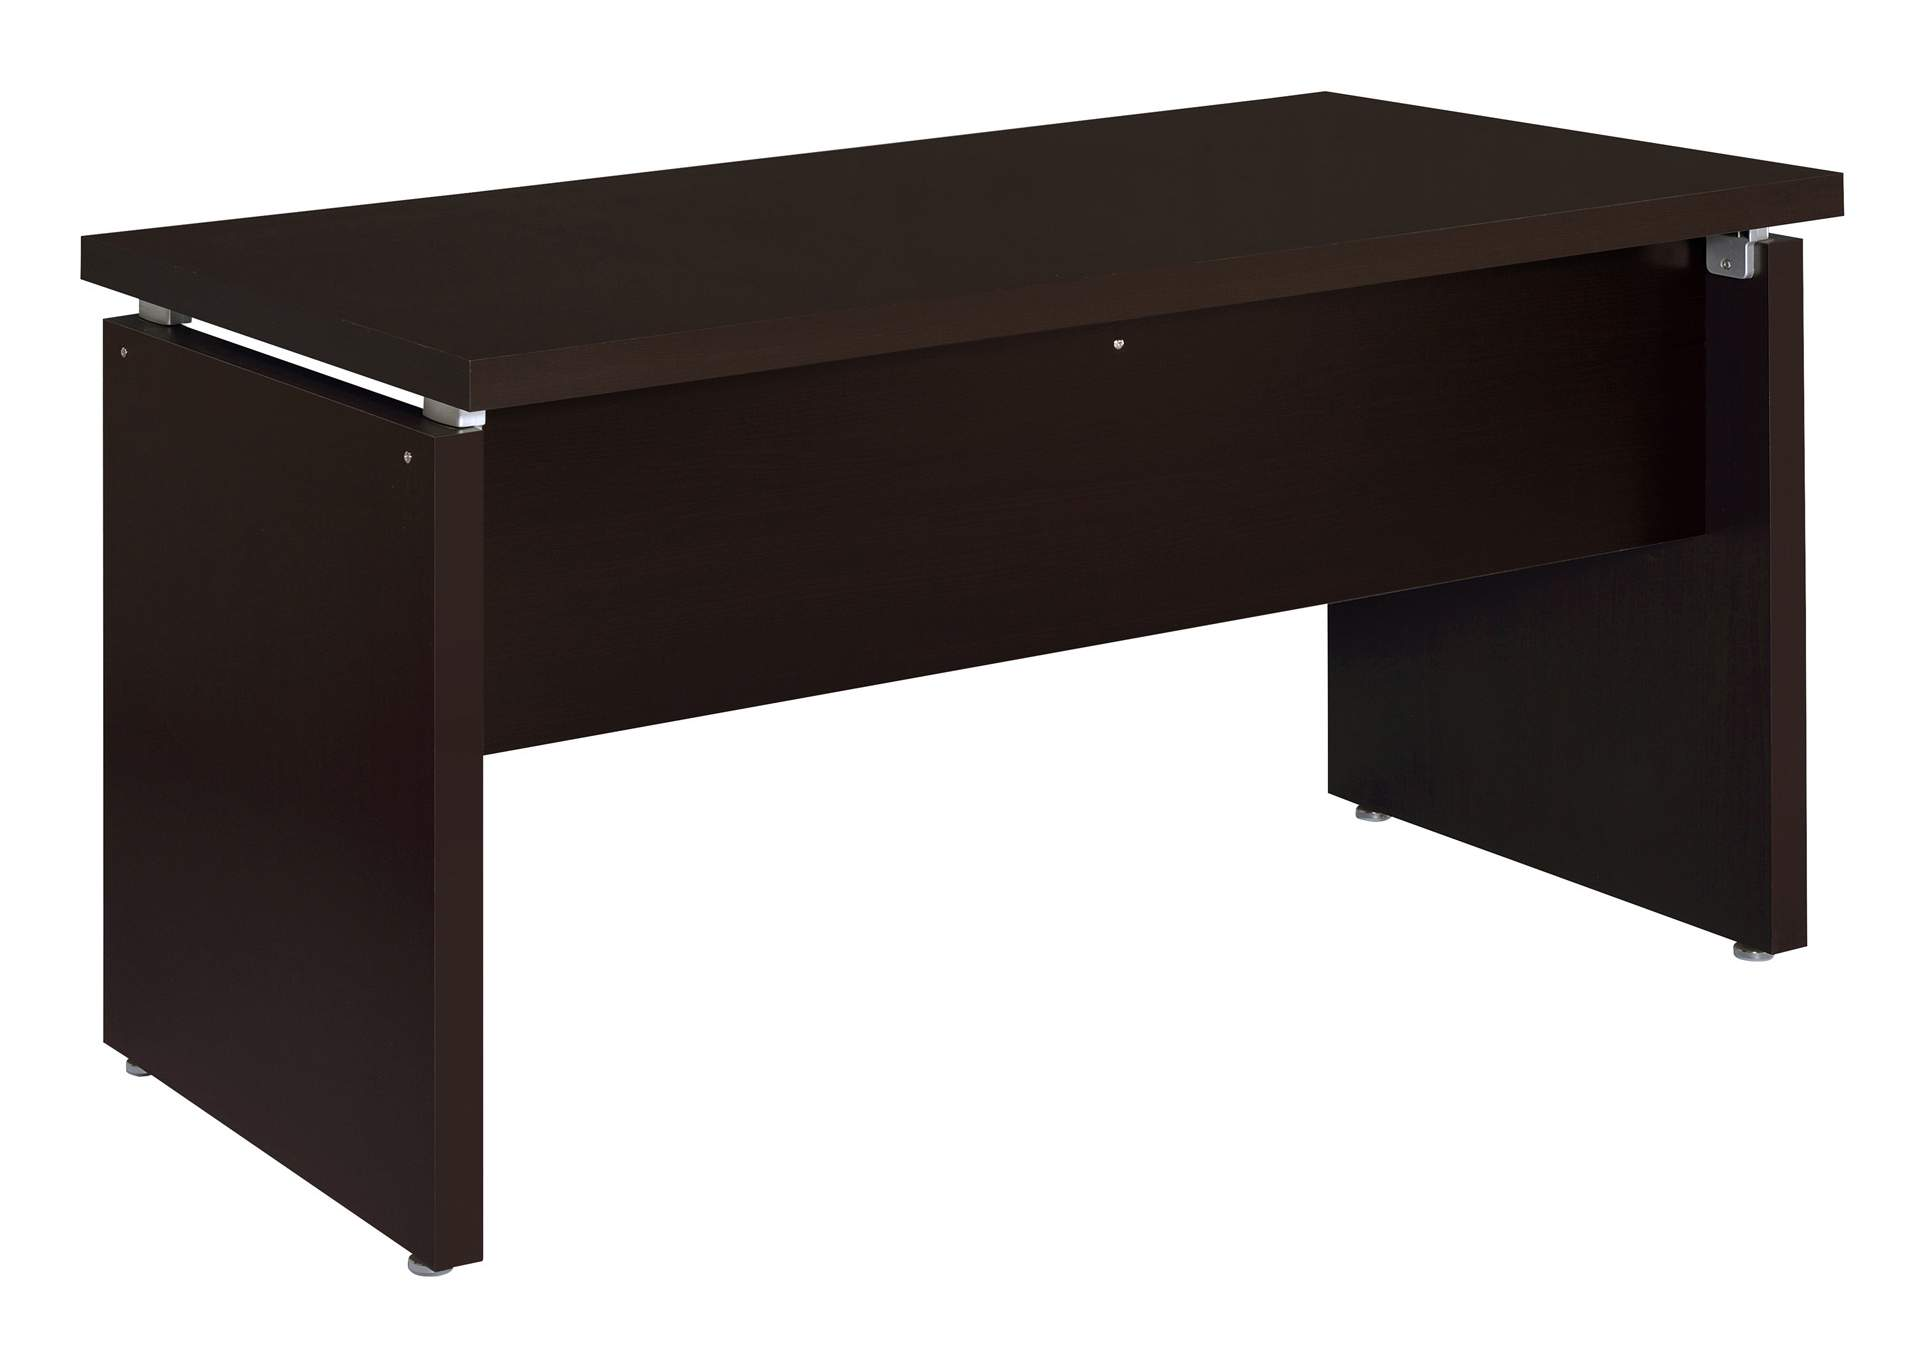 Cappuccino Skylar Contemporary Computer Desk,Coaster Furniture